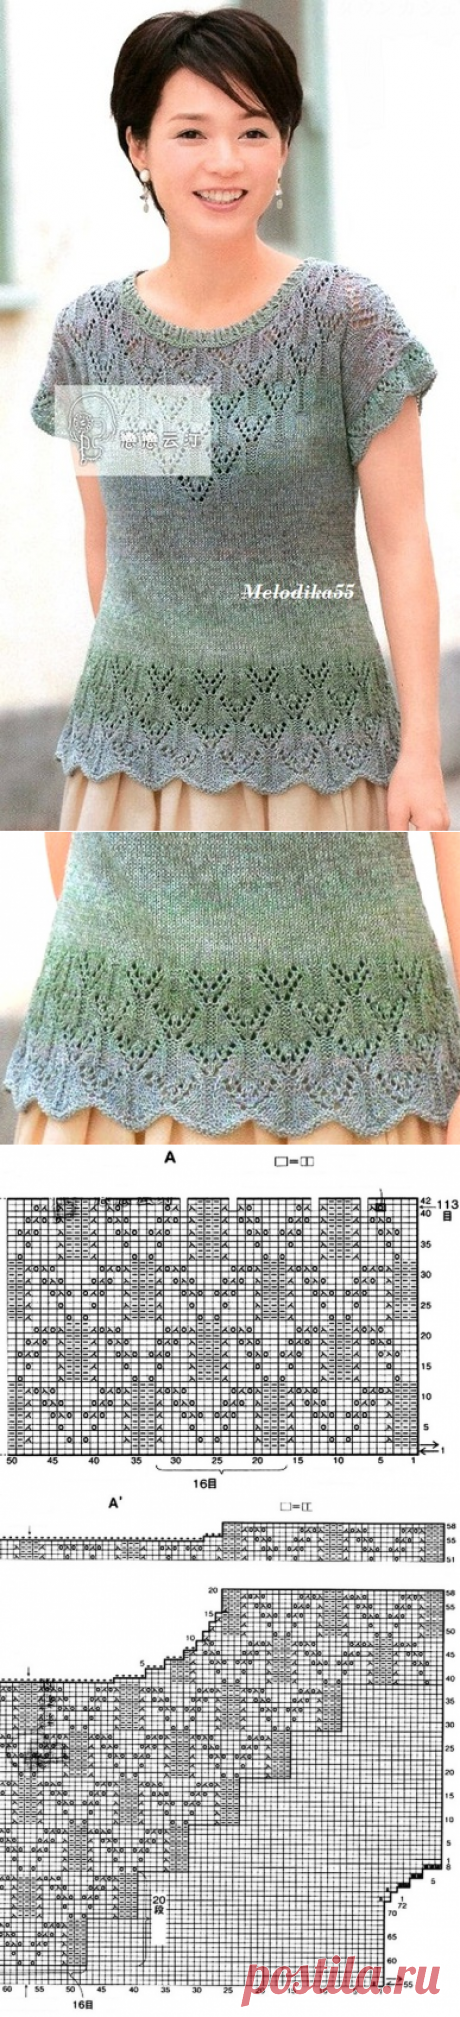 Openwork pullover with V-shaped cut